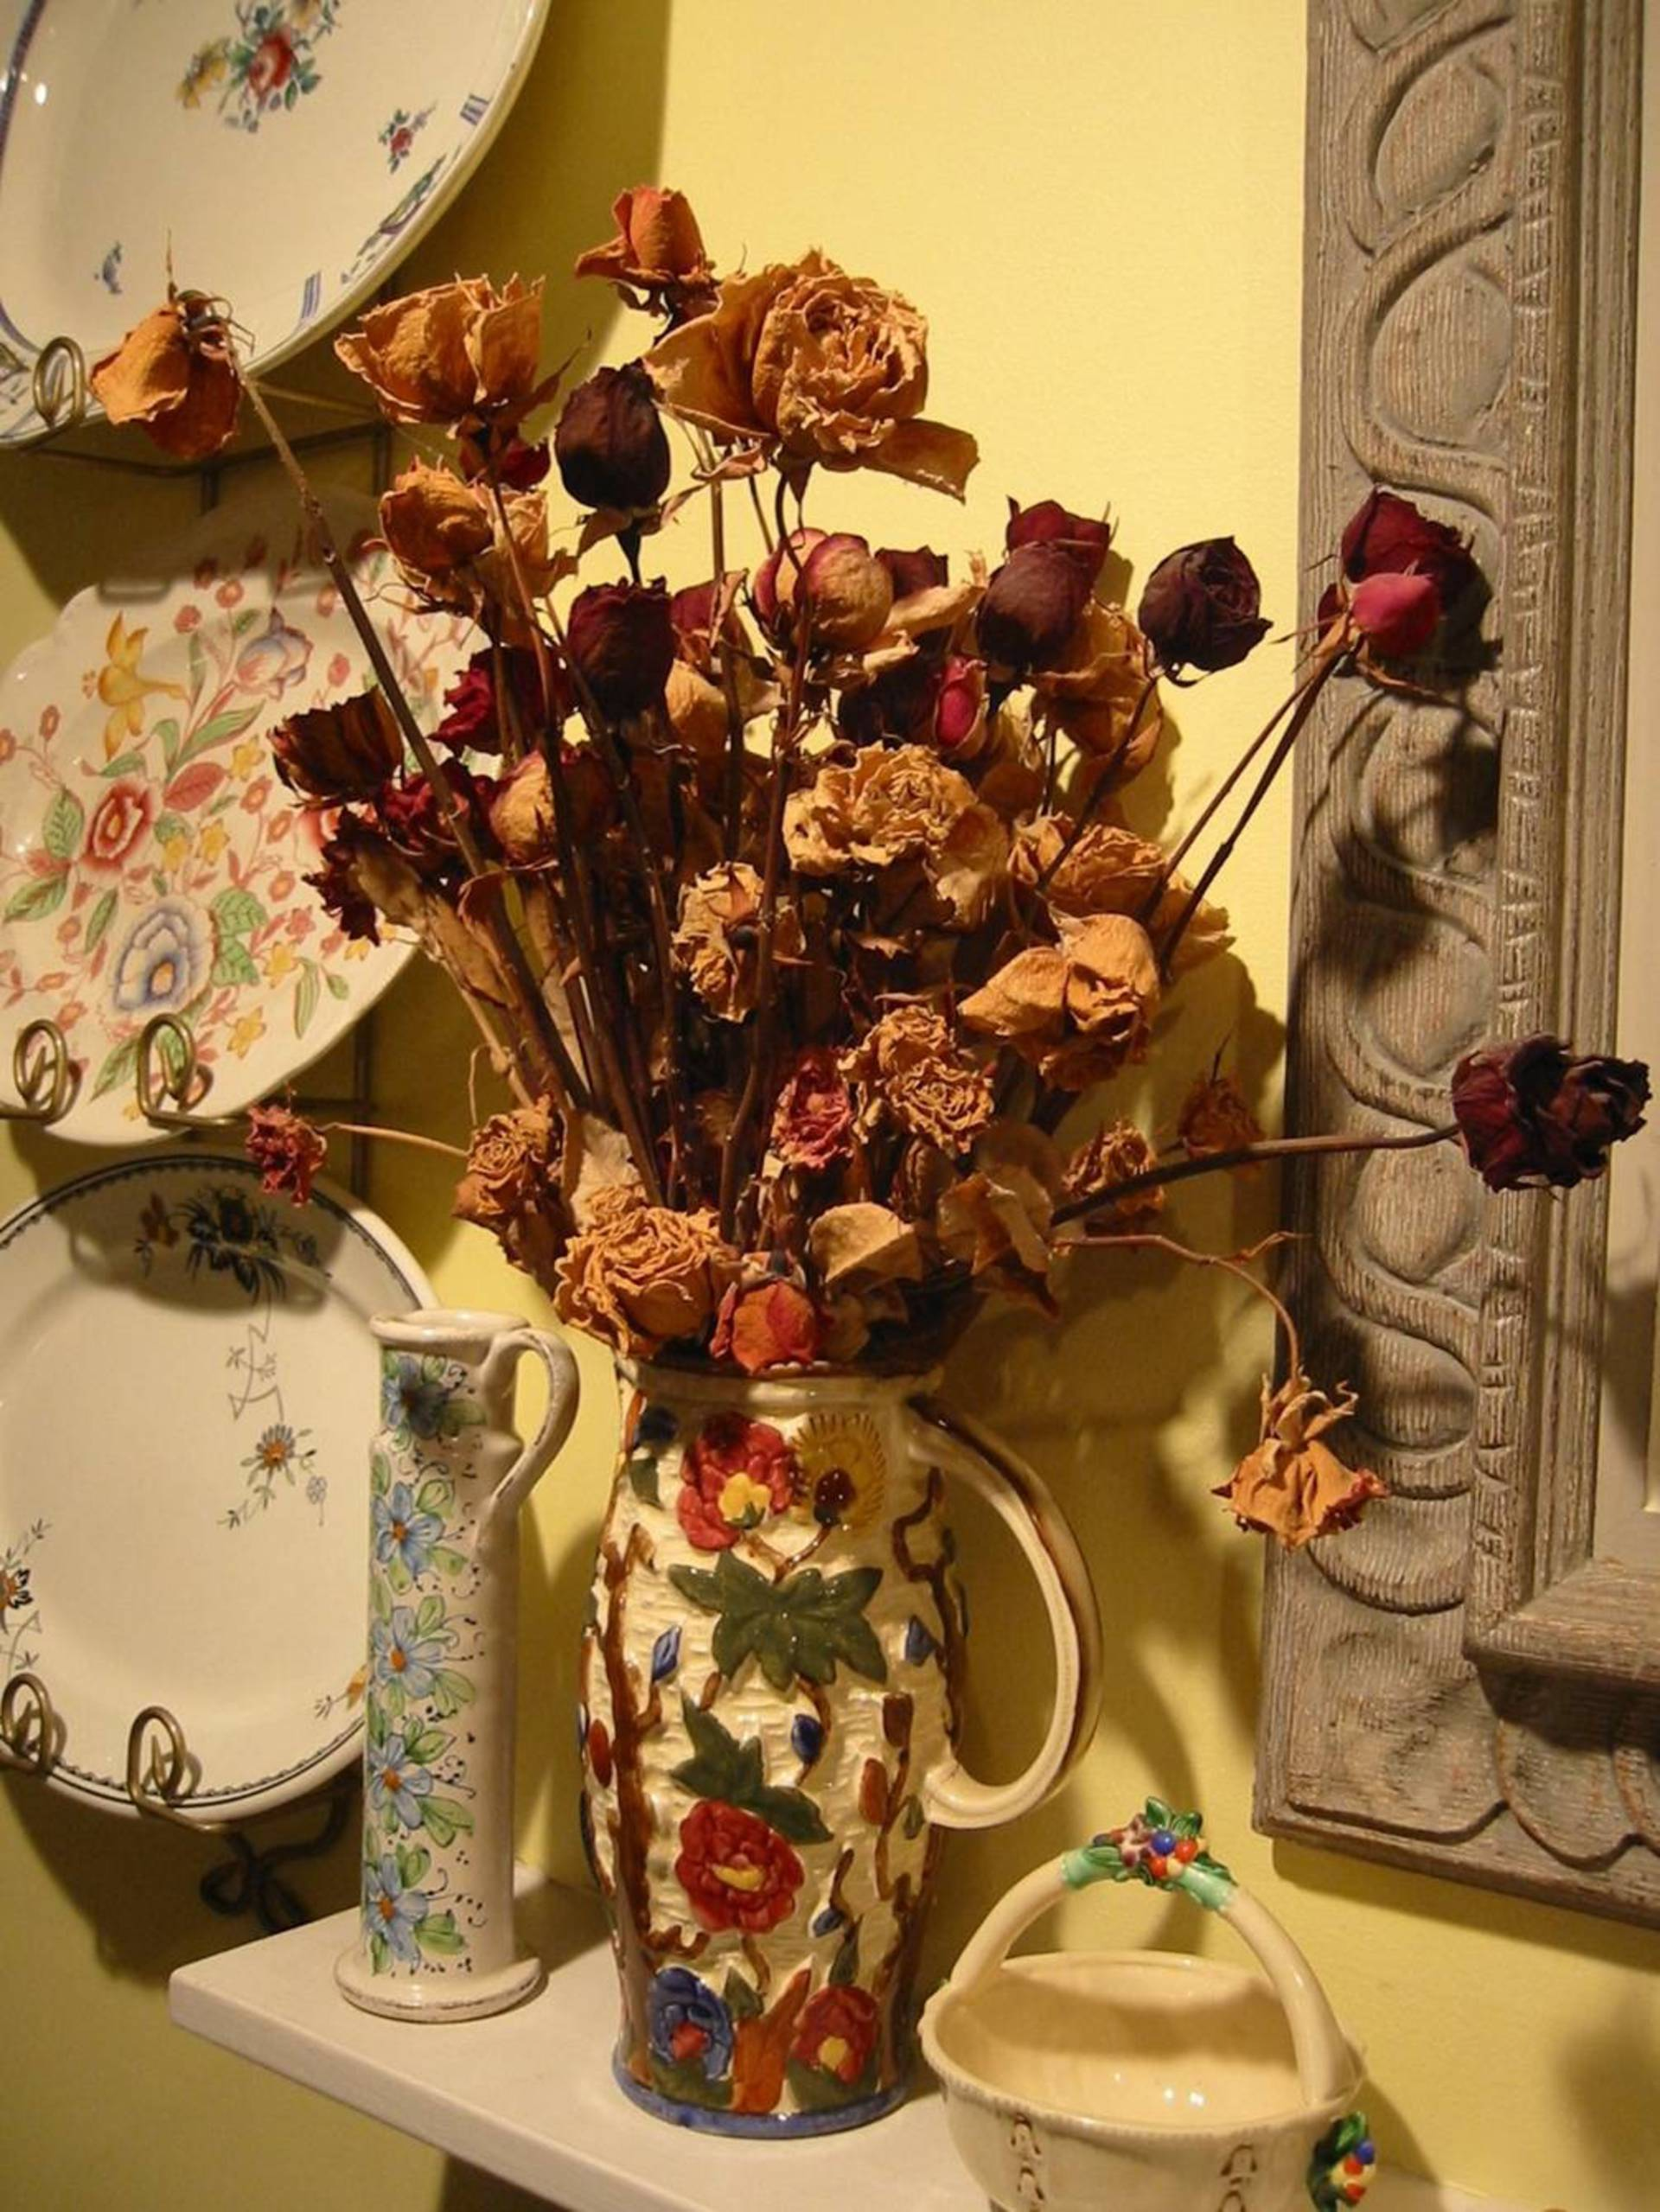 Decorate Your House With Dried Flowers Home Reviews Home Decorators Catalog Best Ideas of Home Decor and Design [homedecoratorscatalog.us]